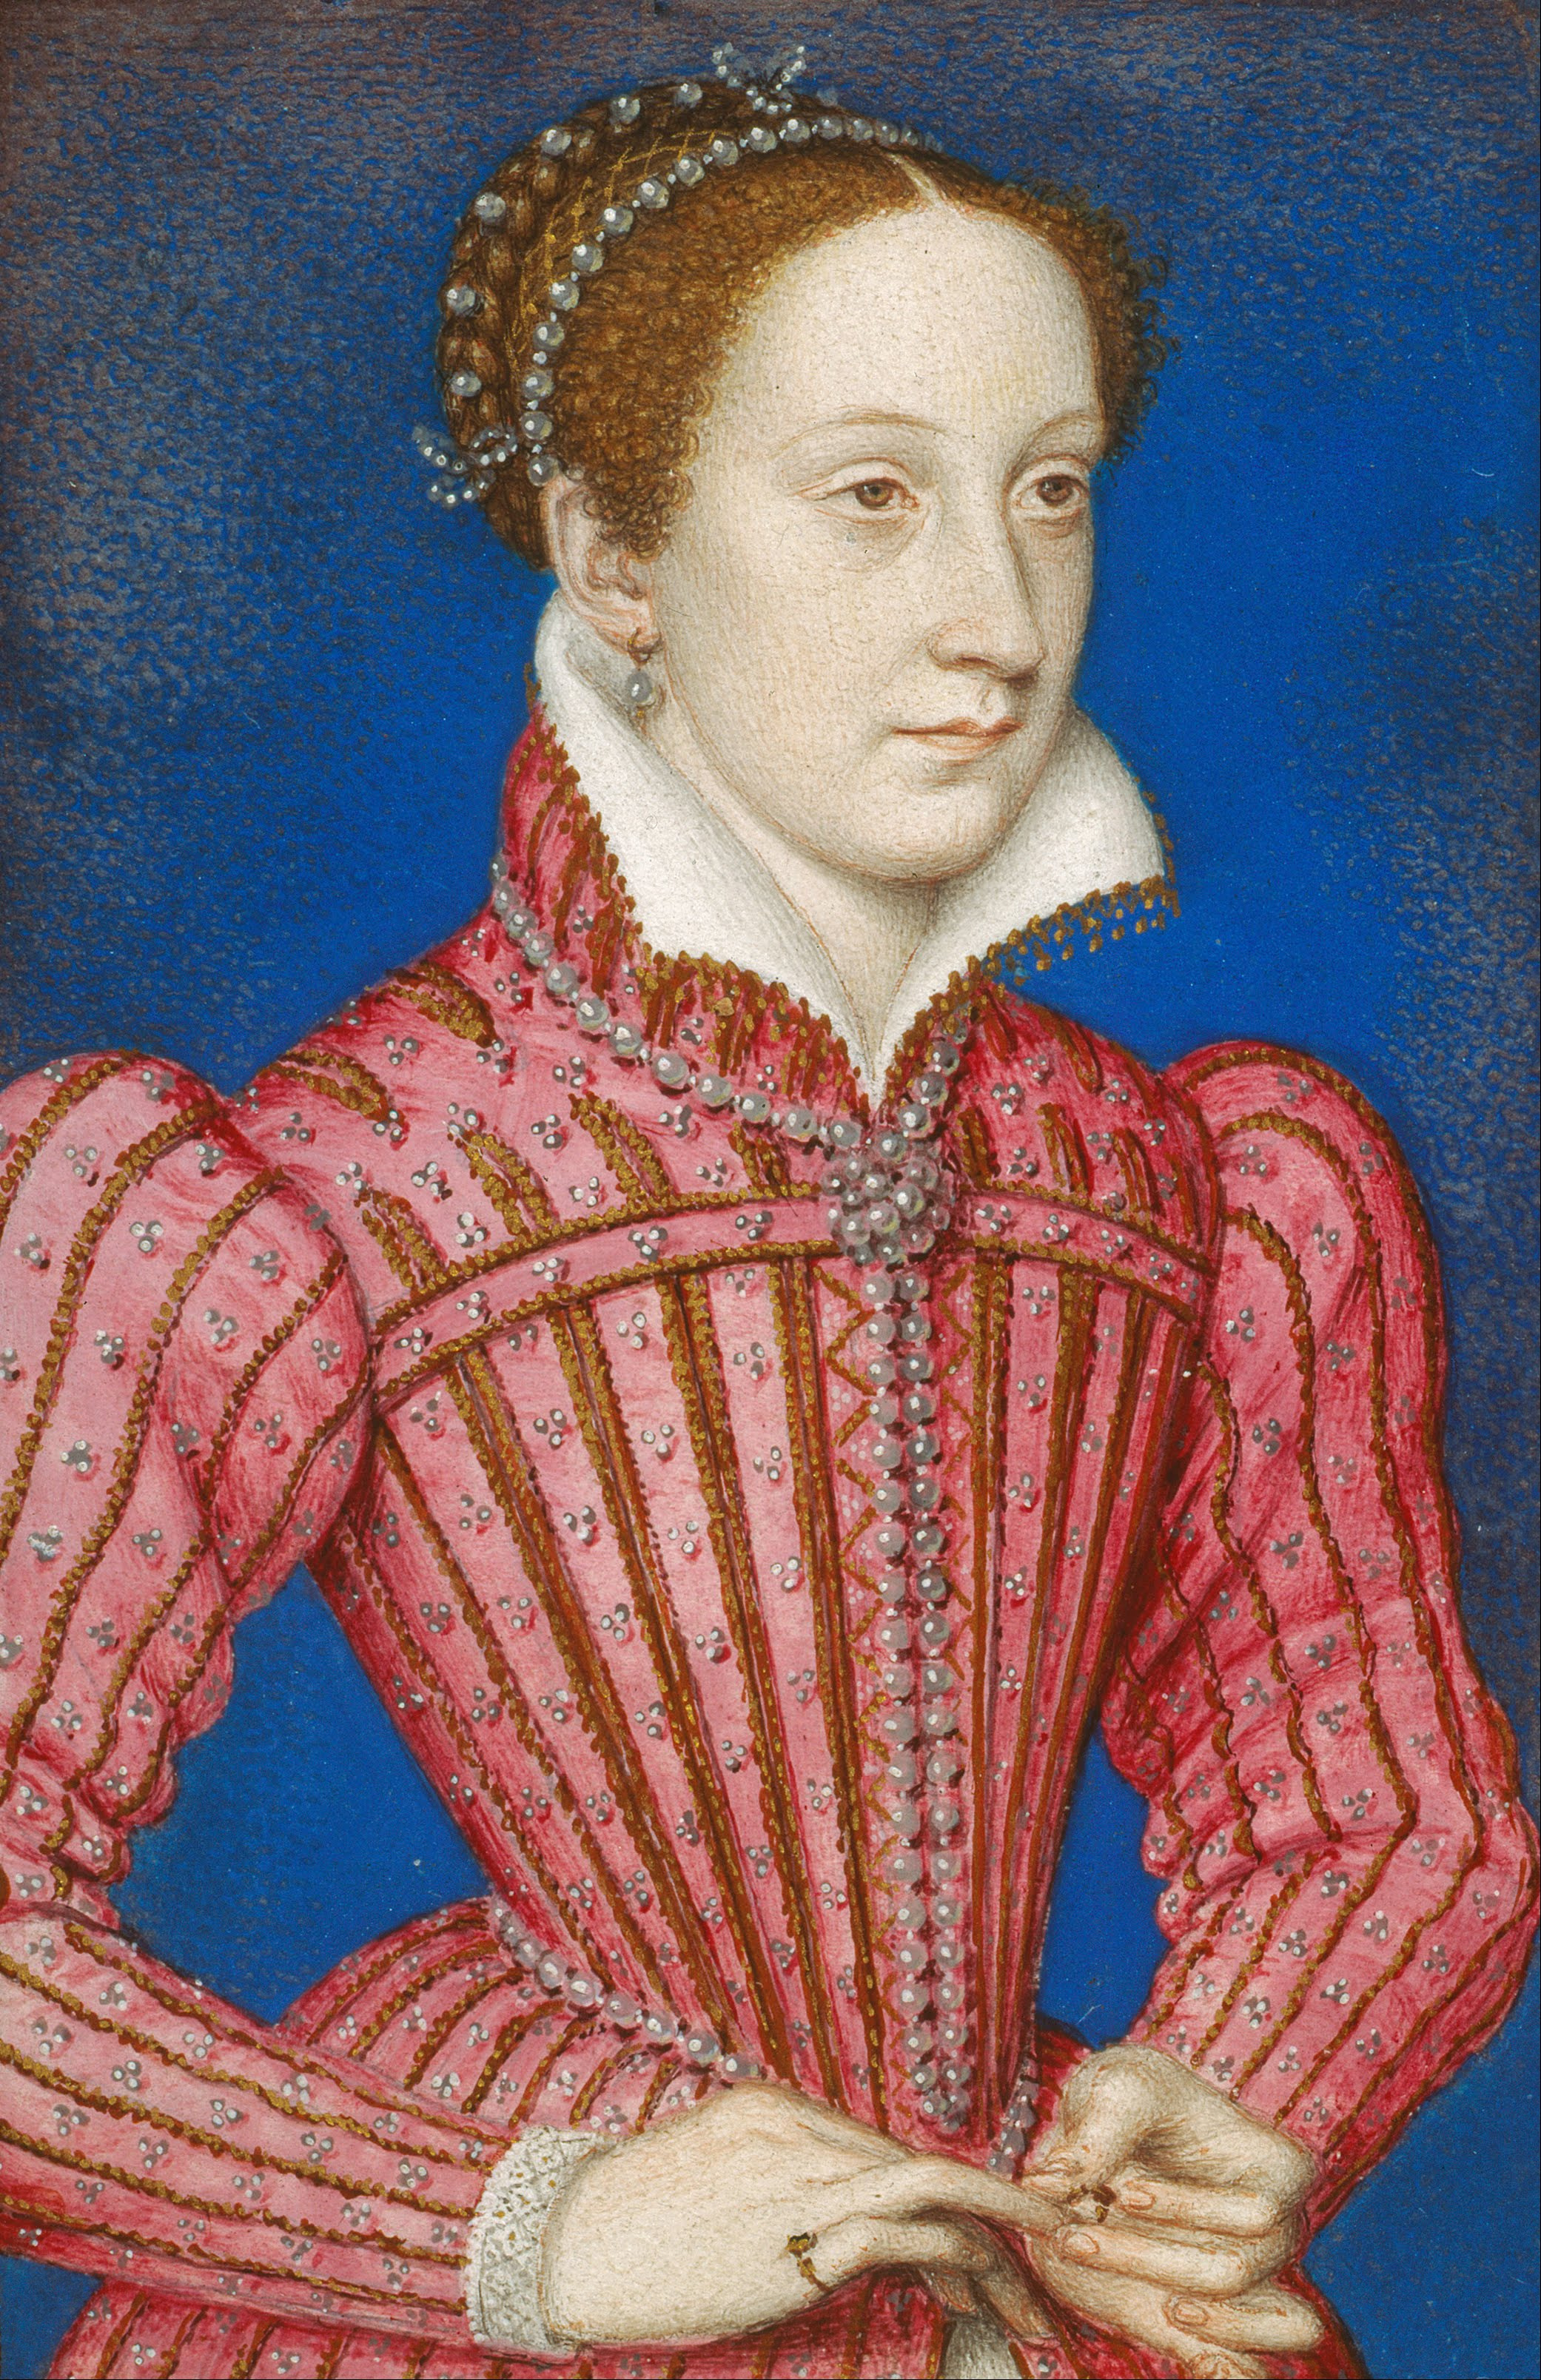 François_Clouet_-_Mary,_Queen_of_Scots_(1542-87)_-_Google_Art_Project.jpg (2082×3216)